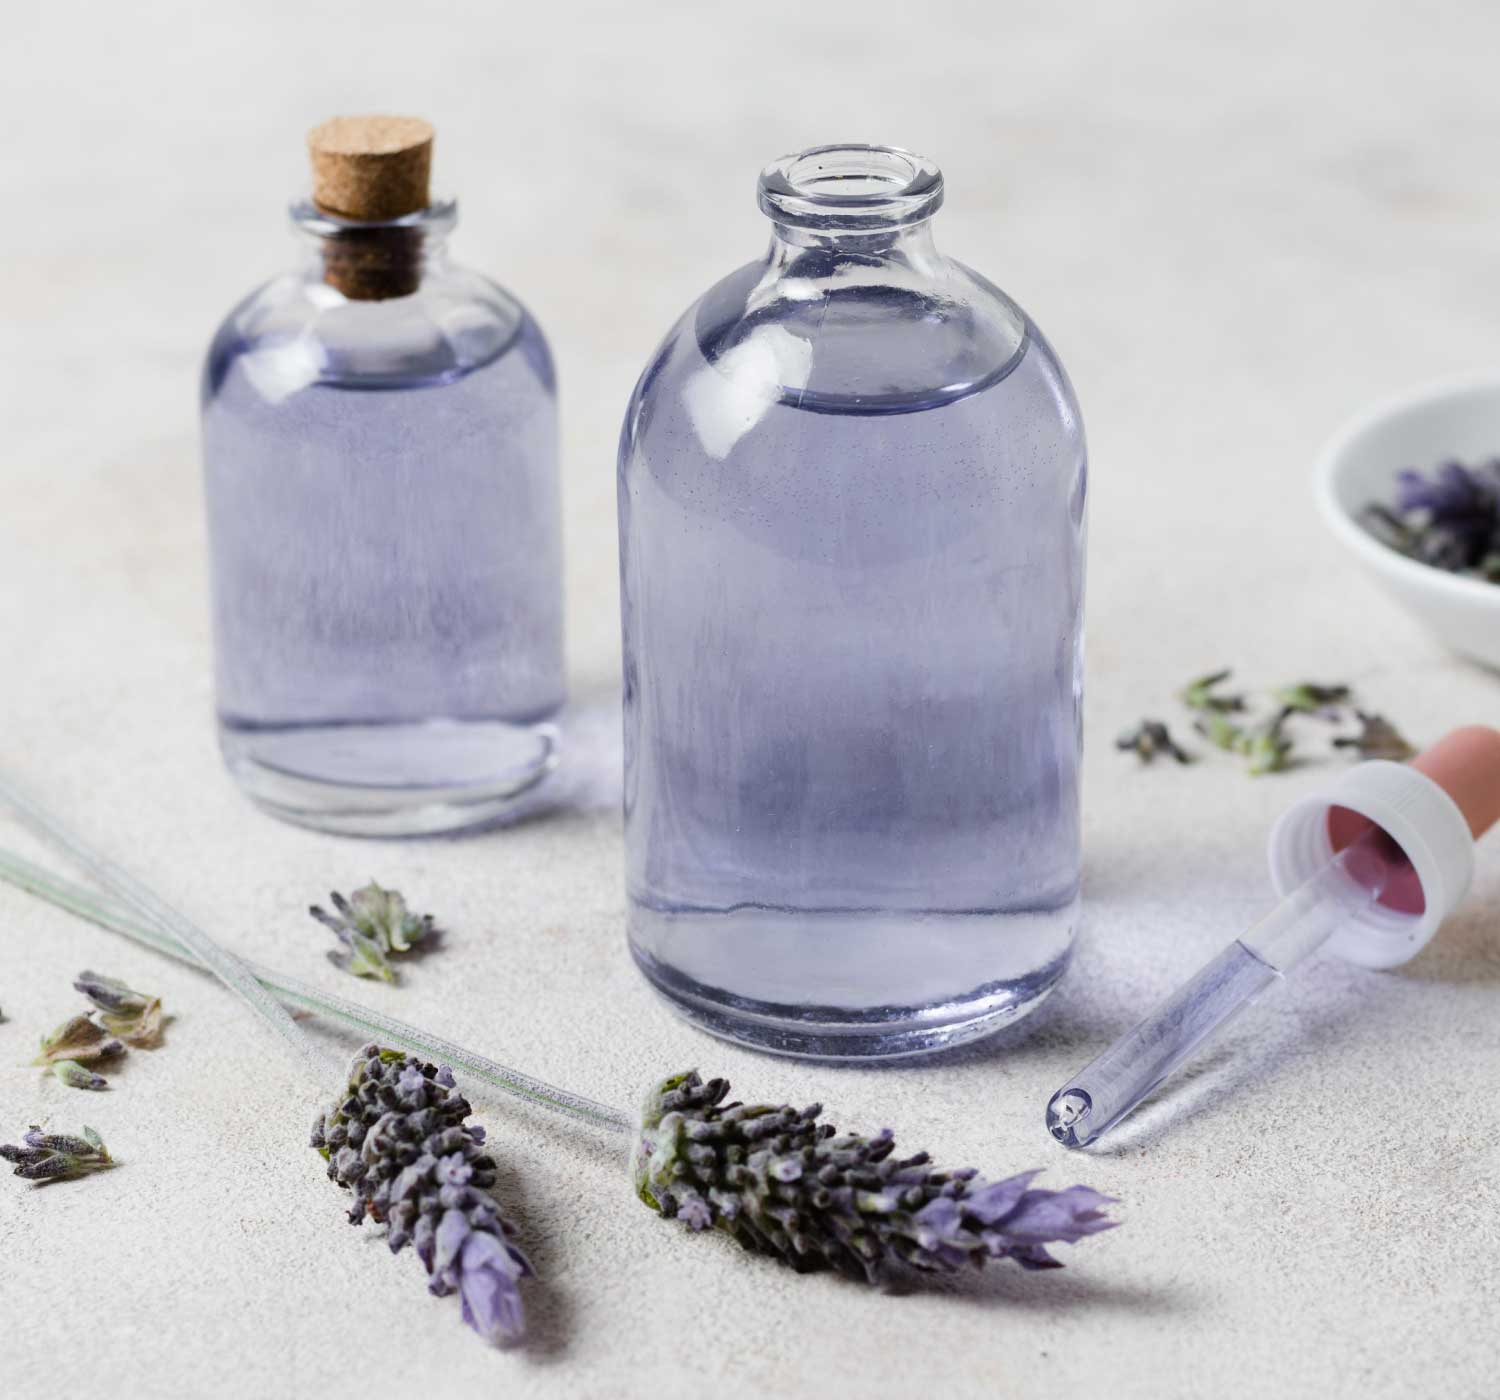 Flower Essence for Sleep: Moon Dreams with Lavender